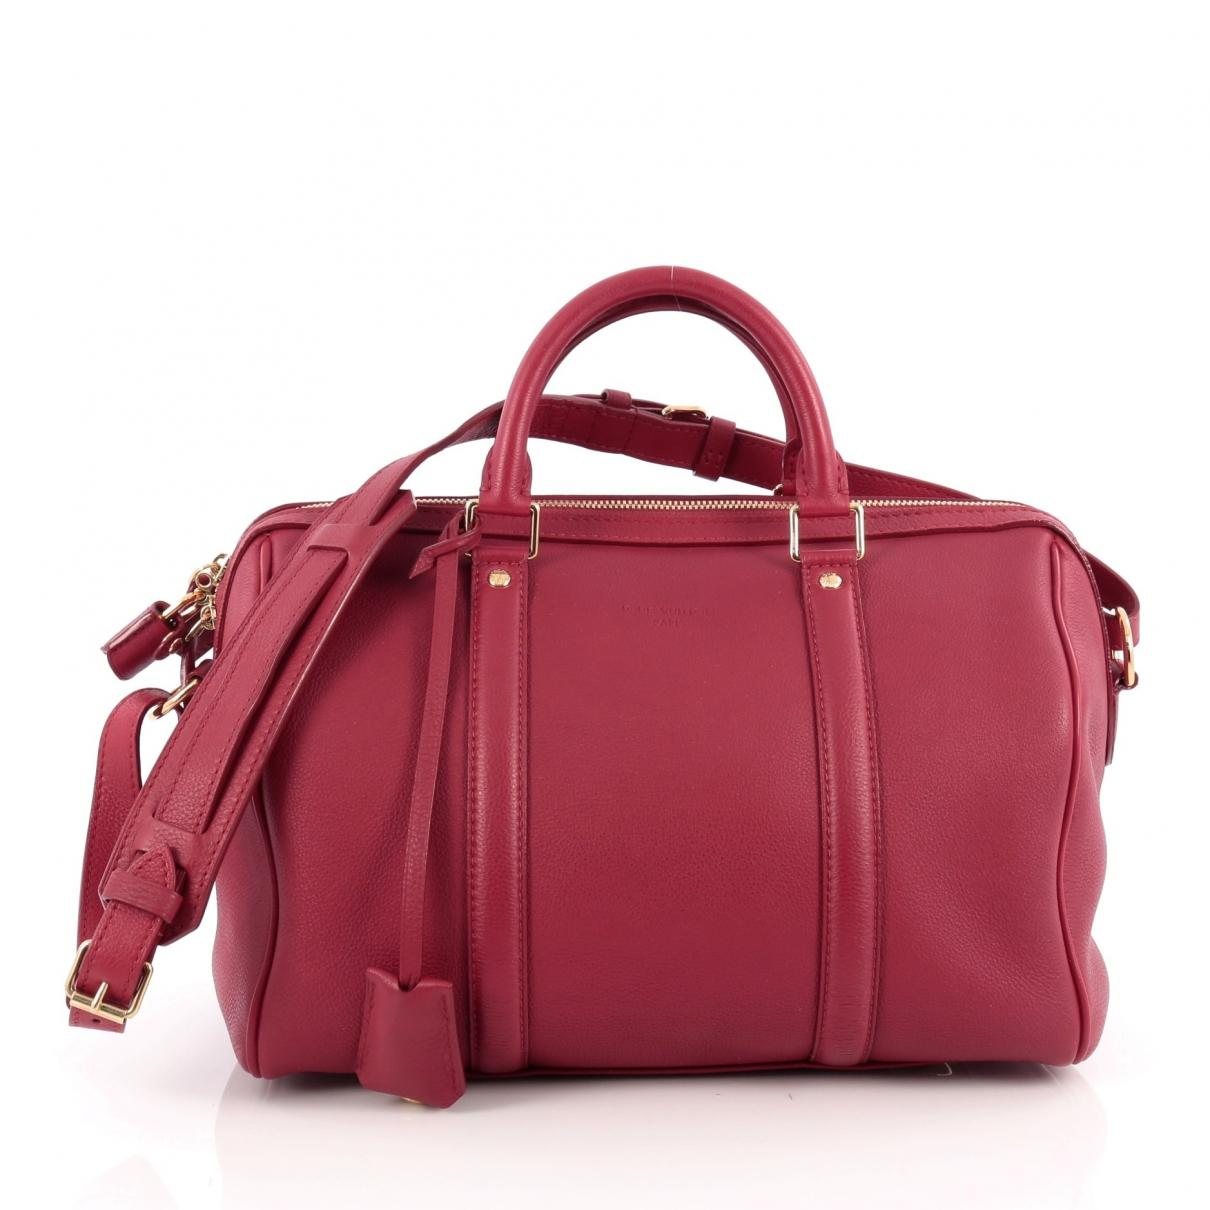 Lyst - Louis Vuitton Pre-owned Red Leather Handbag in Red c27ea2b21292f